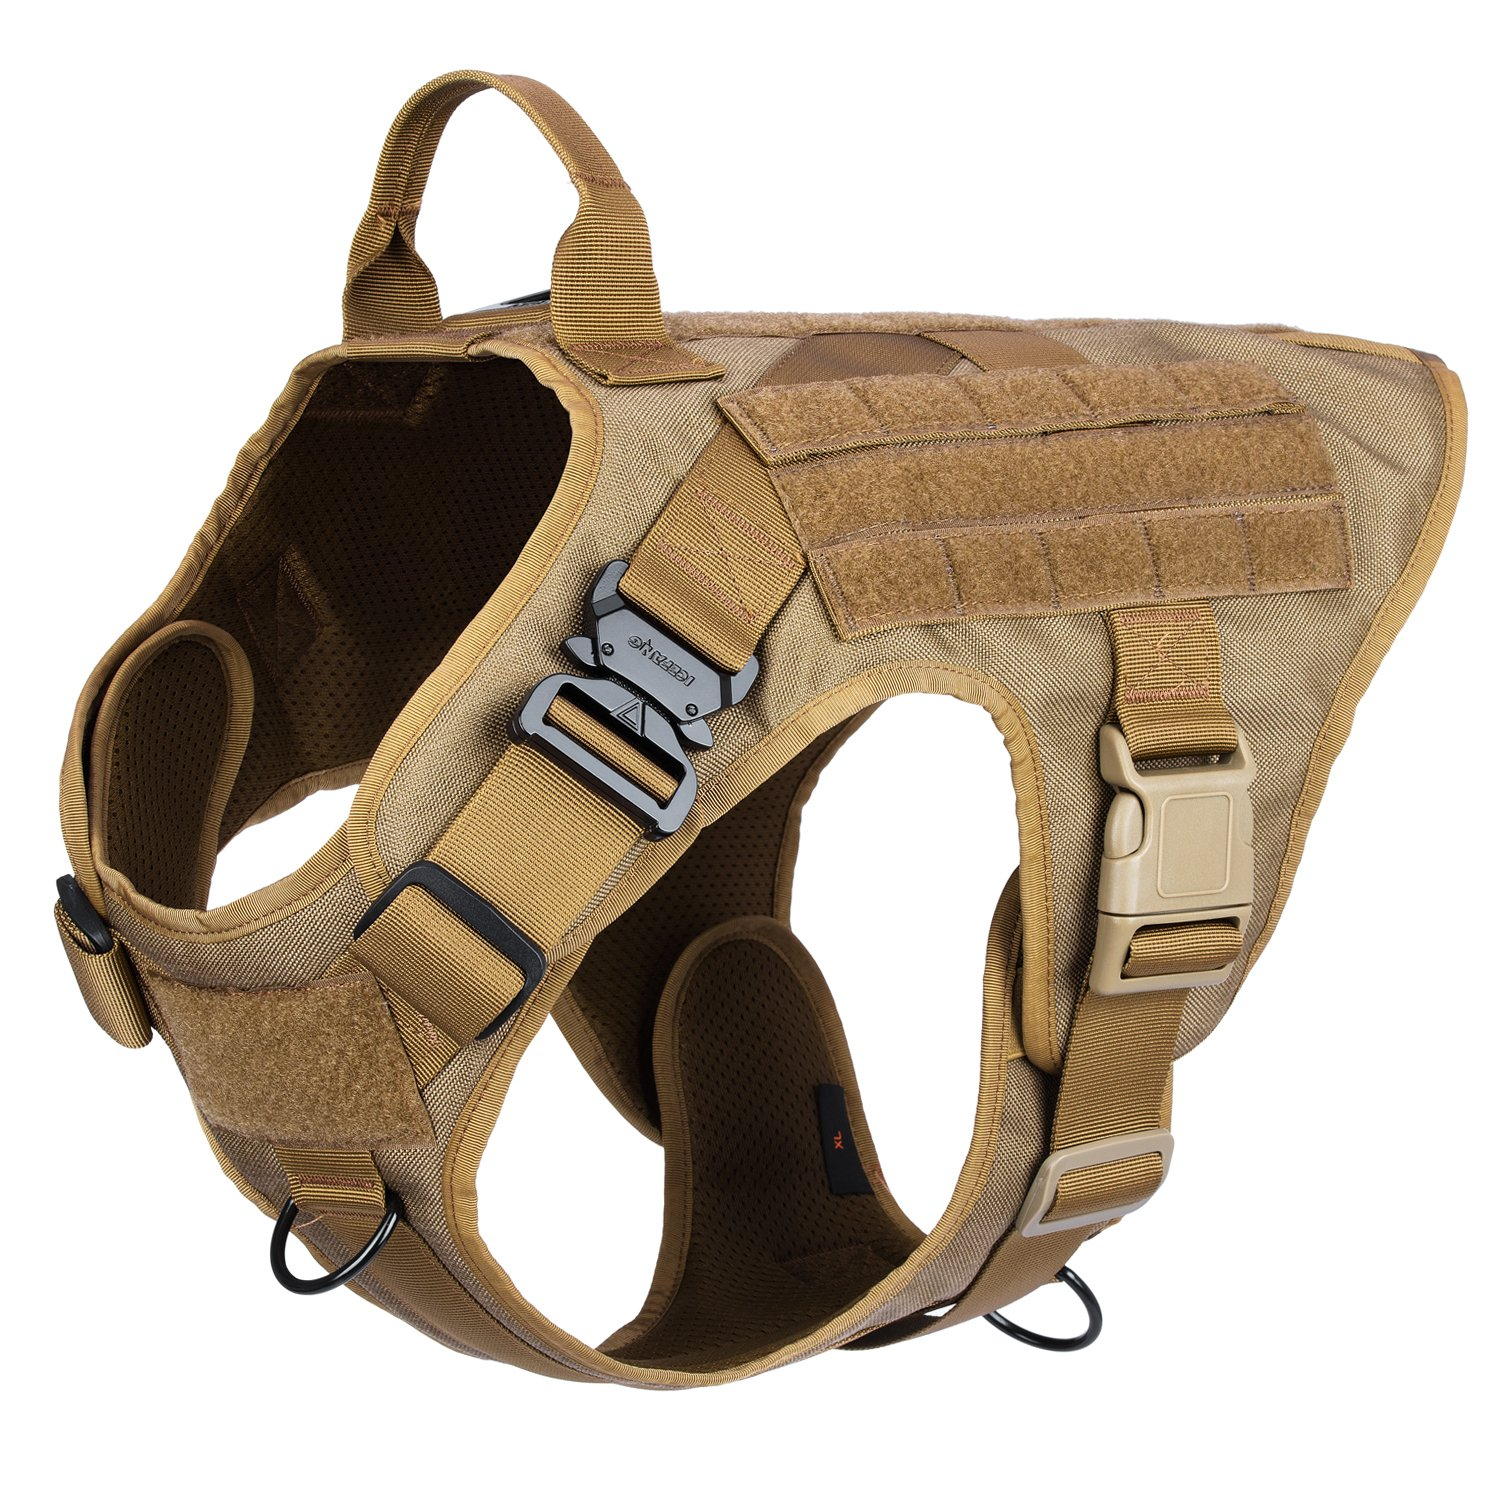 ICEFANG Dog Modular Harness,Military K9 Working Dog Tactical Molle Vest,No Pull Front Clip,Unbreakable Metal Quick Release Buckle Snap-Proof (XL (32''-39'' Girth), CB-Molle Half Body) by ICEFANG (Image #1)